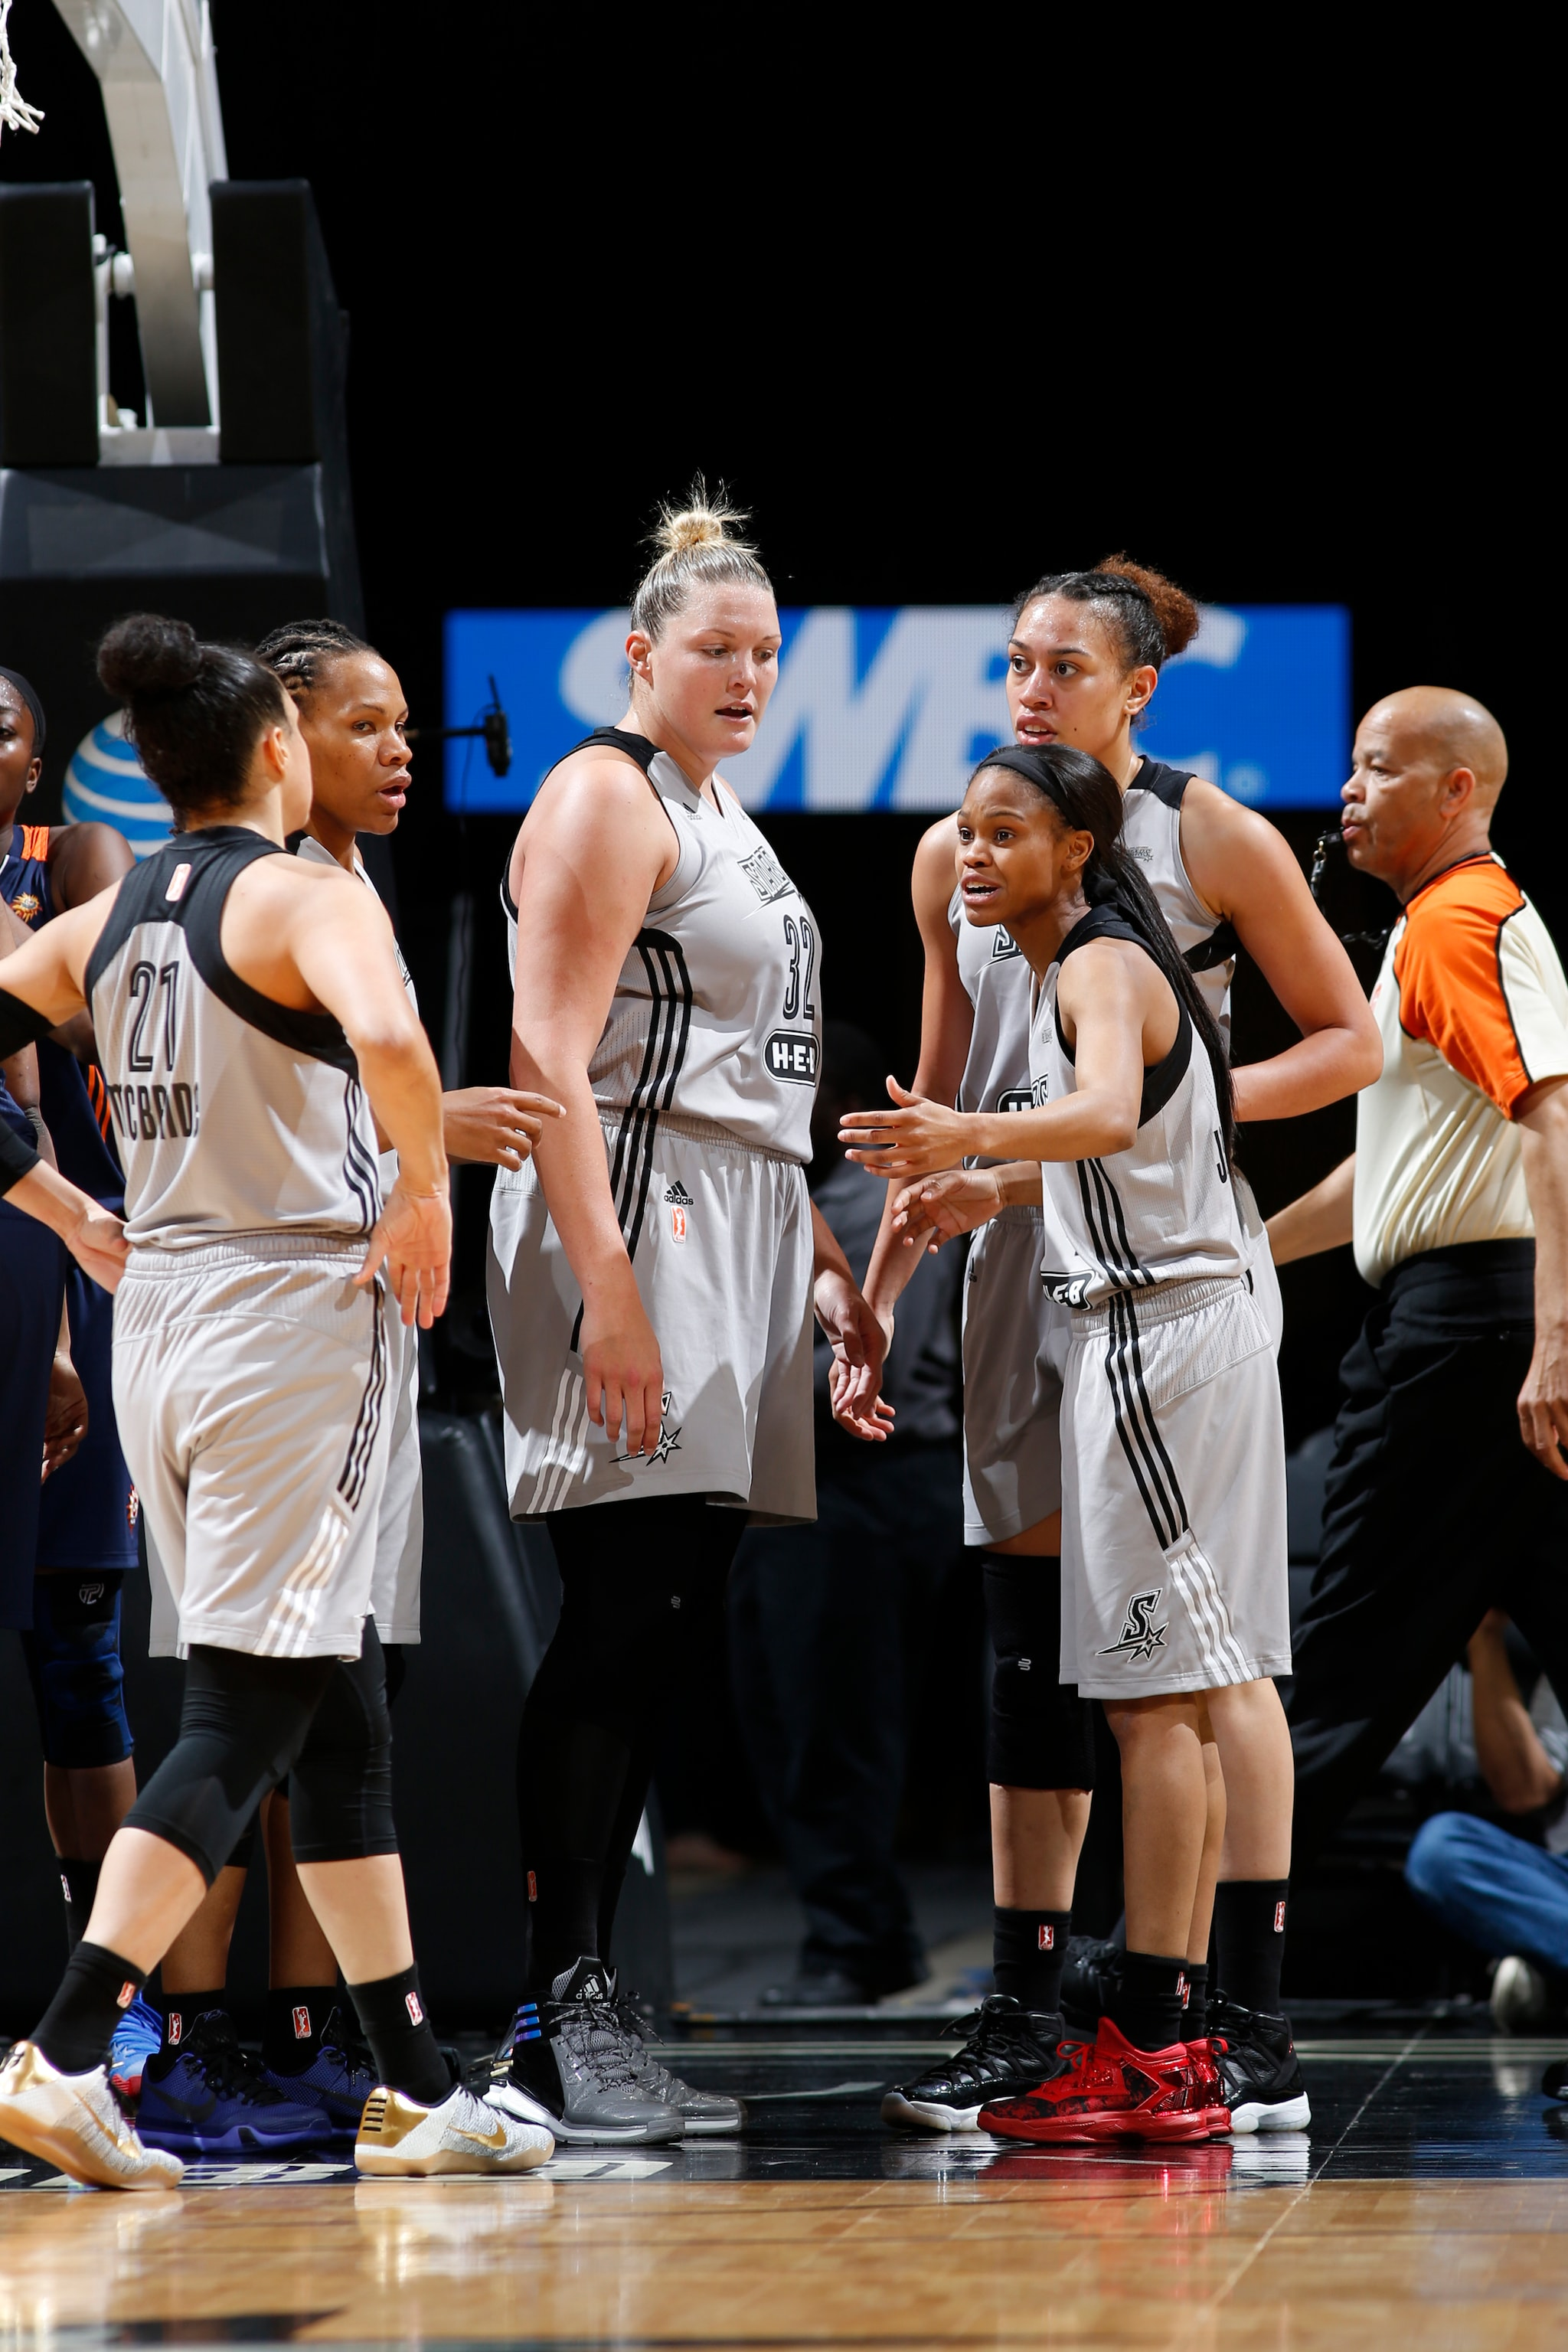 SAN ANTONIO, TX - MAY 19: The San Antonio Stars team huddles during the game against the Connecticut Sun on May 19, 2016 at AT&T Center in San Antonio, Texas. NOTE TO USER: User expressly acknowledges and agrees that, by downloading and or using this Photograph, user is consenting to the terms and conditions of the Getty Images License Agreement. Mandatory Copyright Notice: Copyright 2016 NBAE (Photo by Chris Covatta/NBAE via Getty Images)